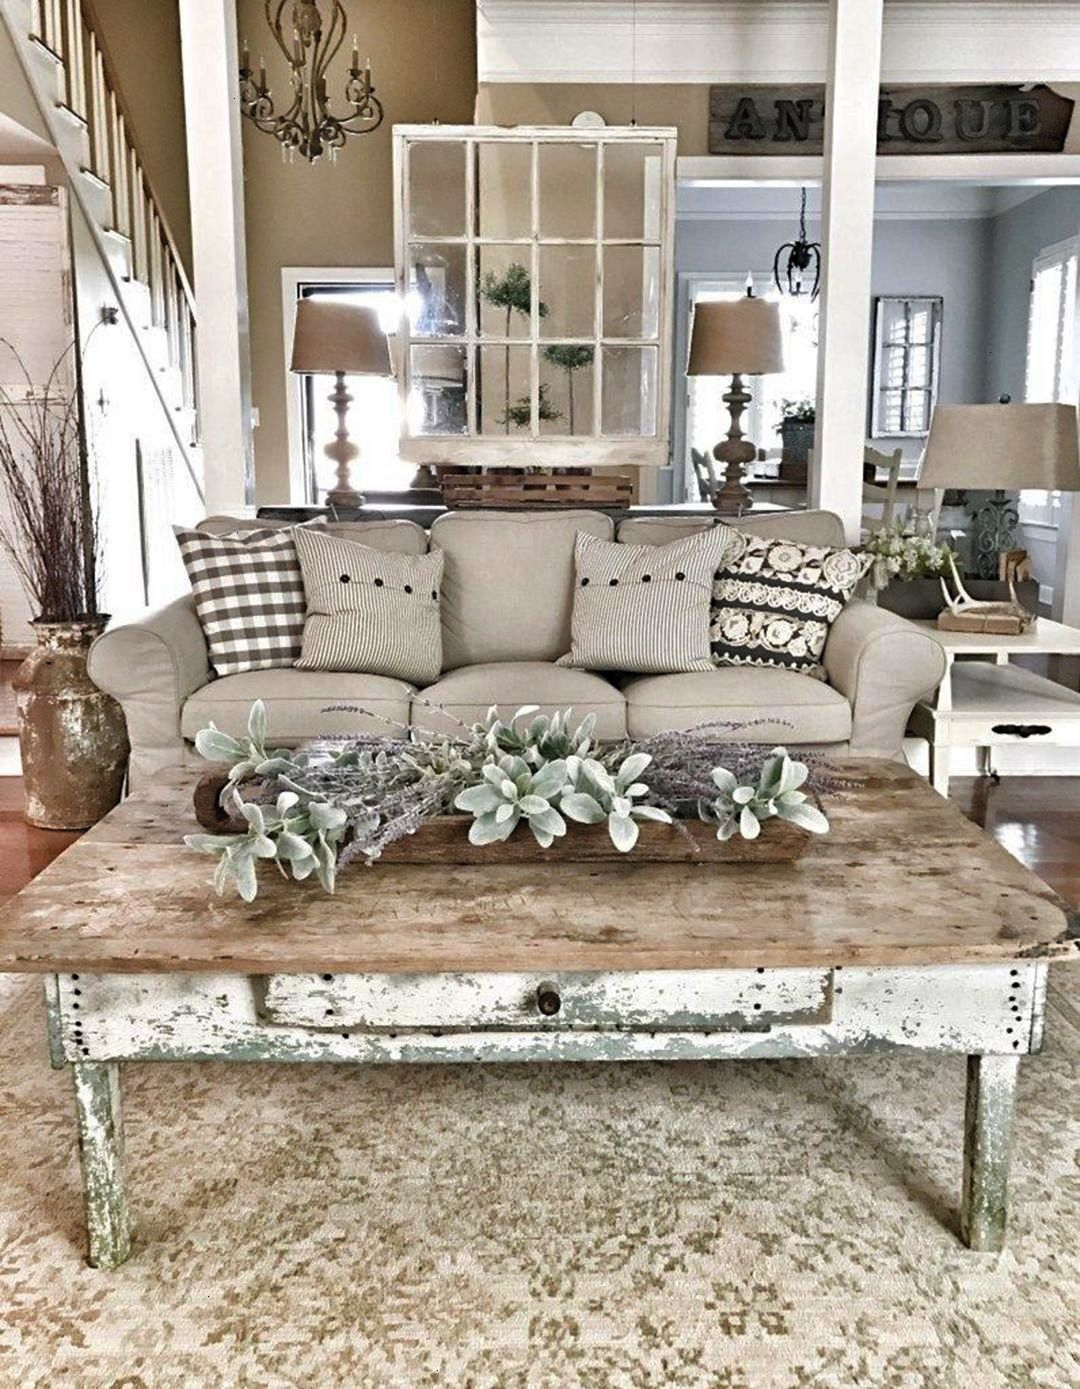 marvellous french style living room furniture | Marvelous 25 Awesome Shabby Chic Apartment Living Room ...